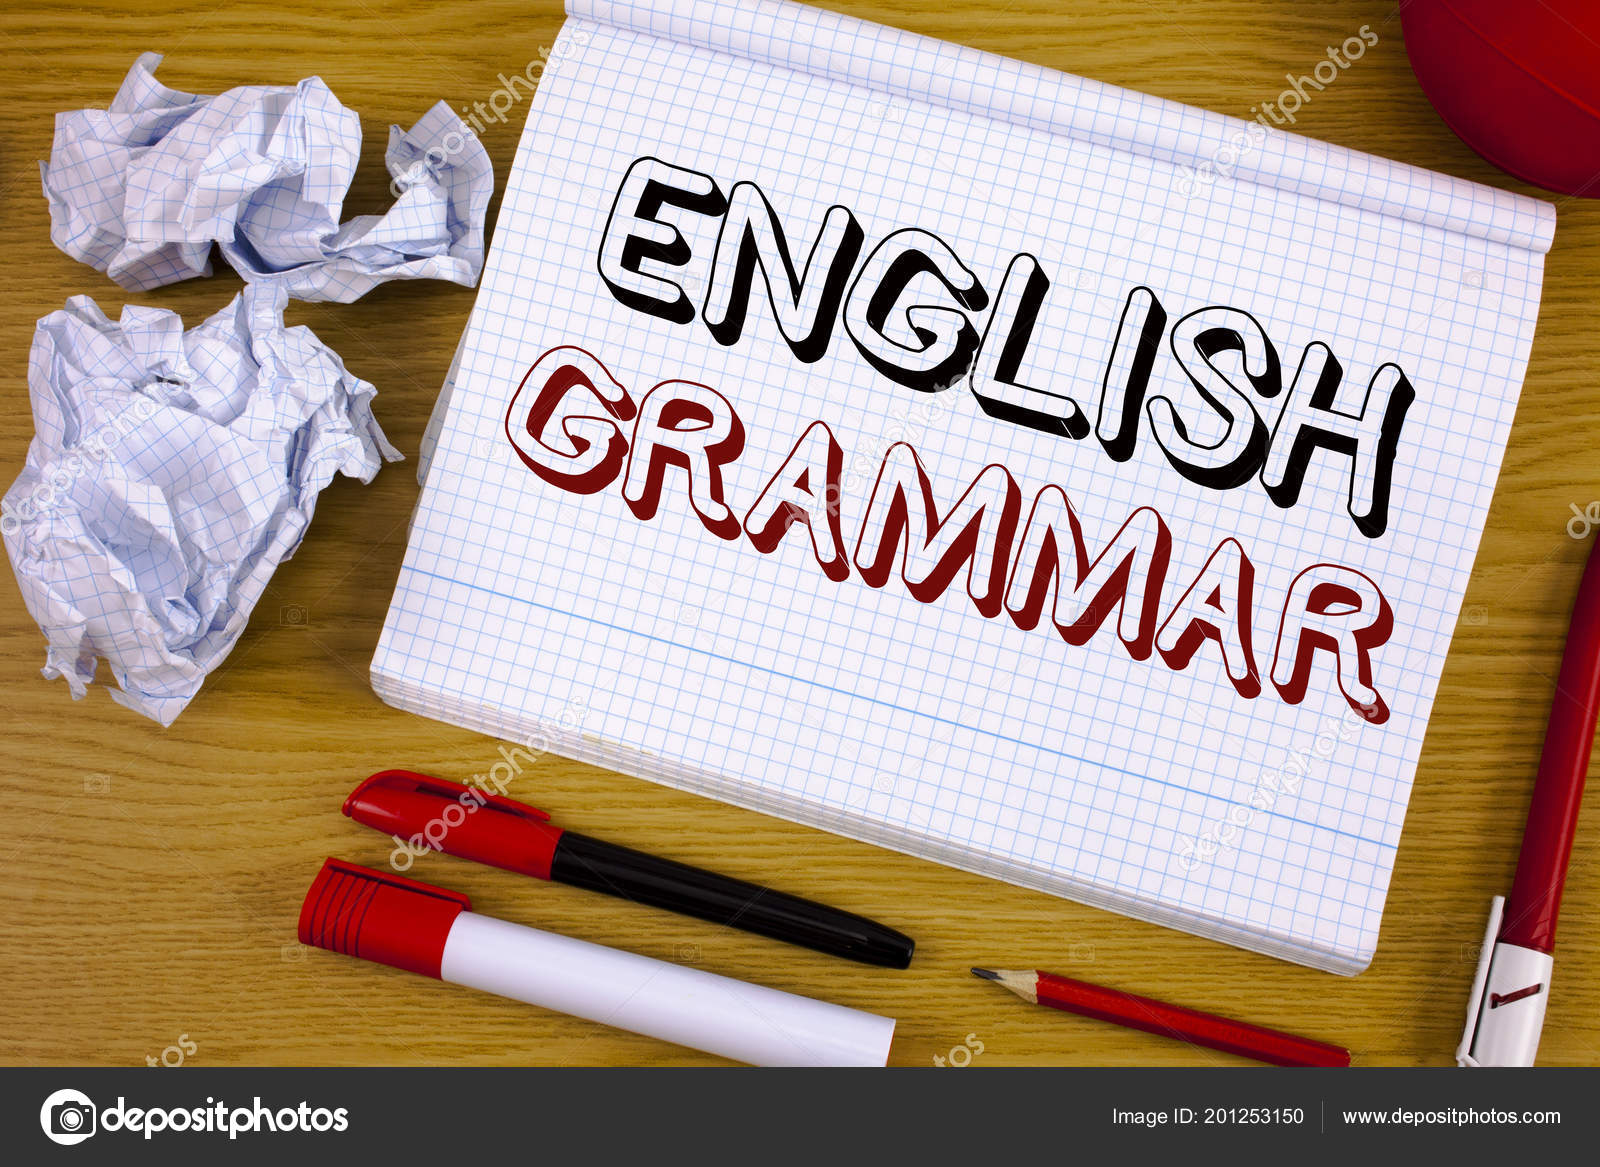 Descargar Libro English Grammar In Use Text Sign Showing English Grammar Conceptual Photo Language